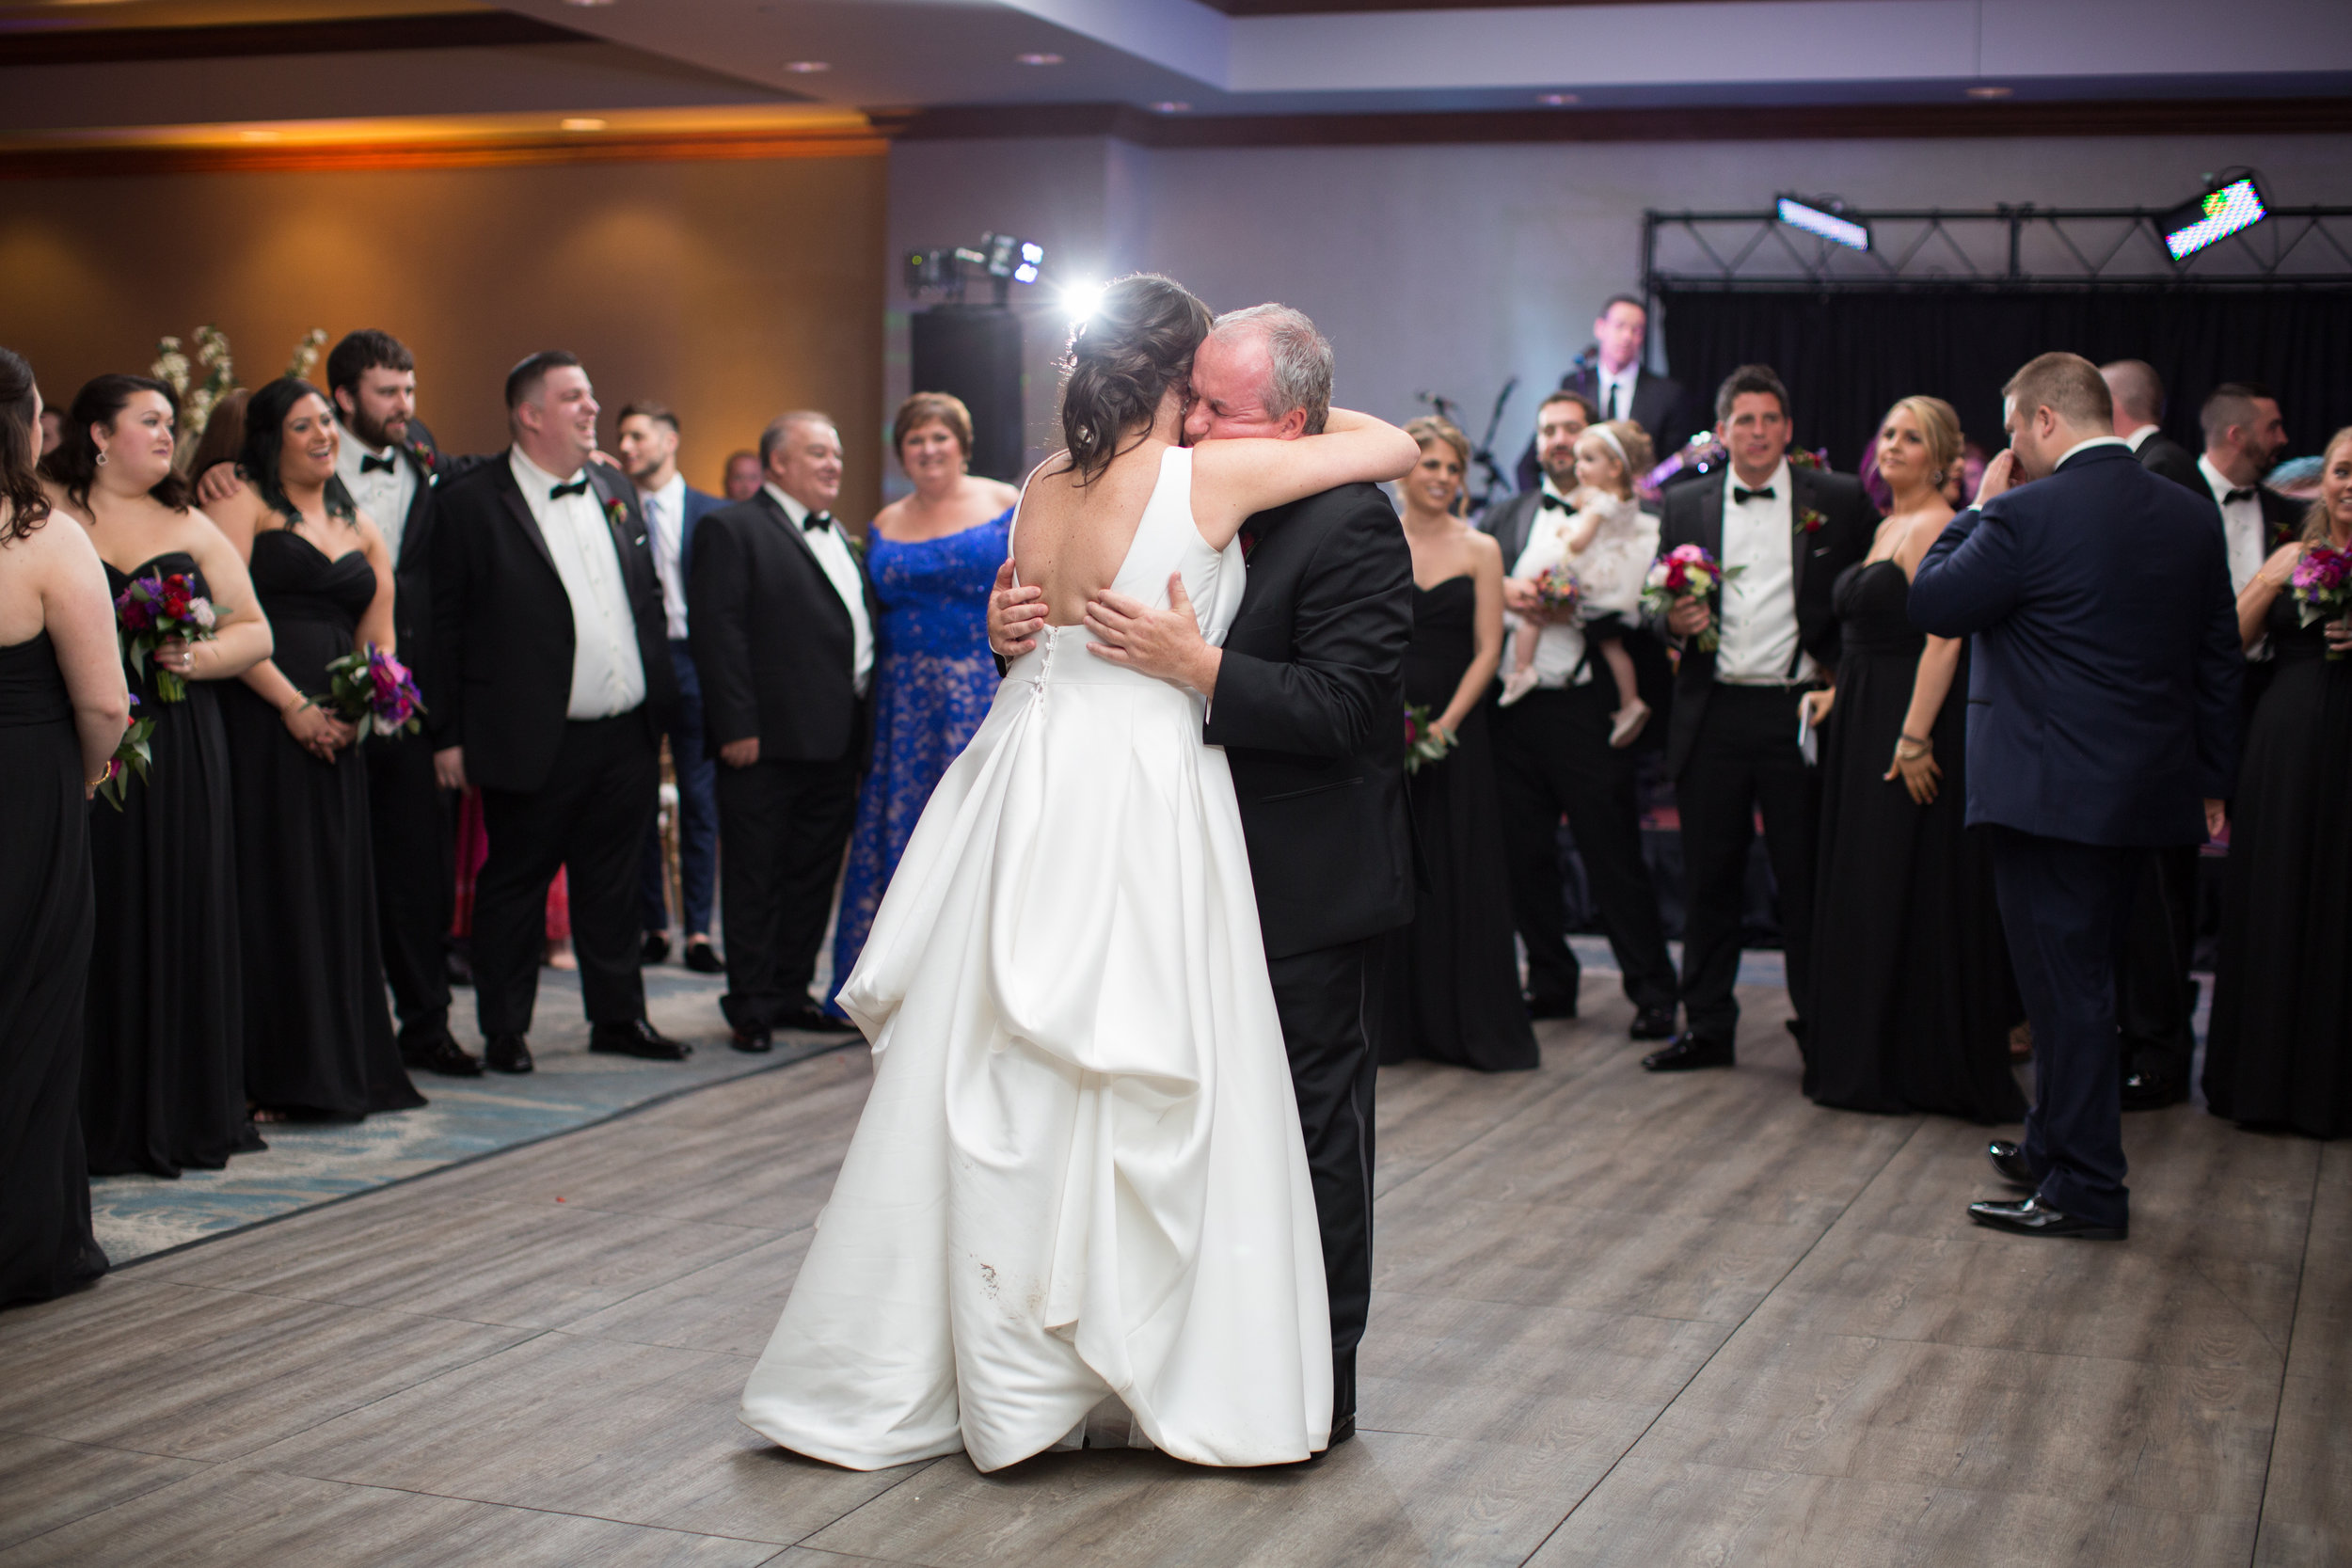 Hilton Scranton PA Wedding Photos_JDP-122.jpg